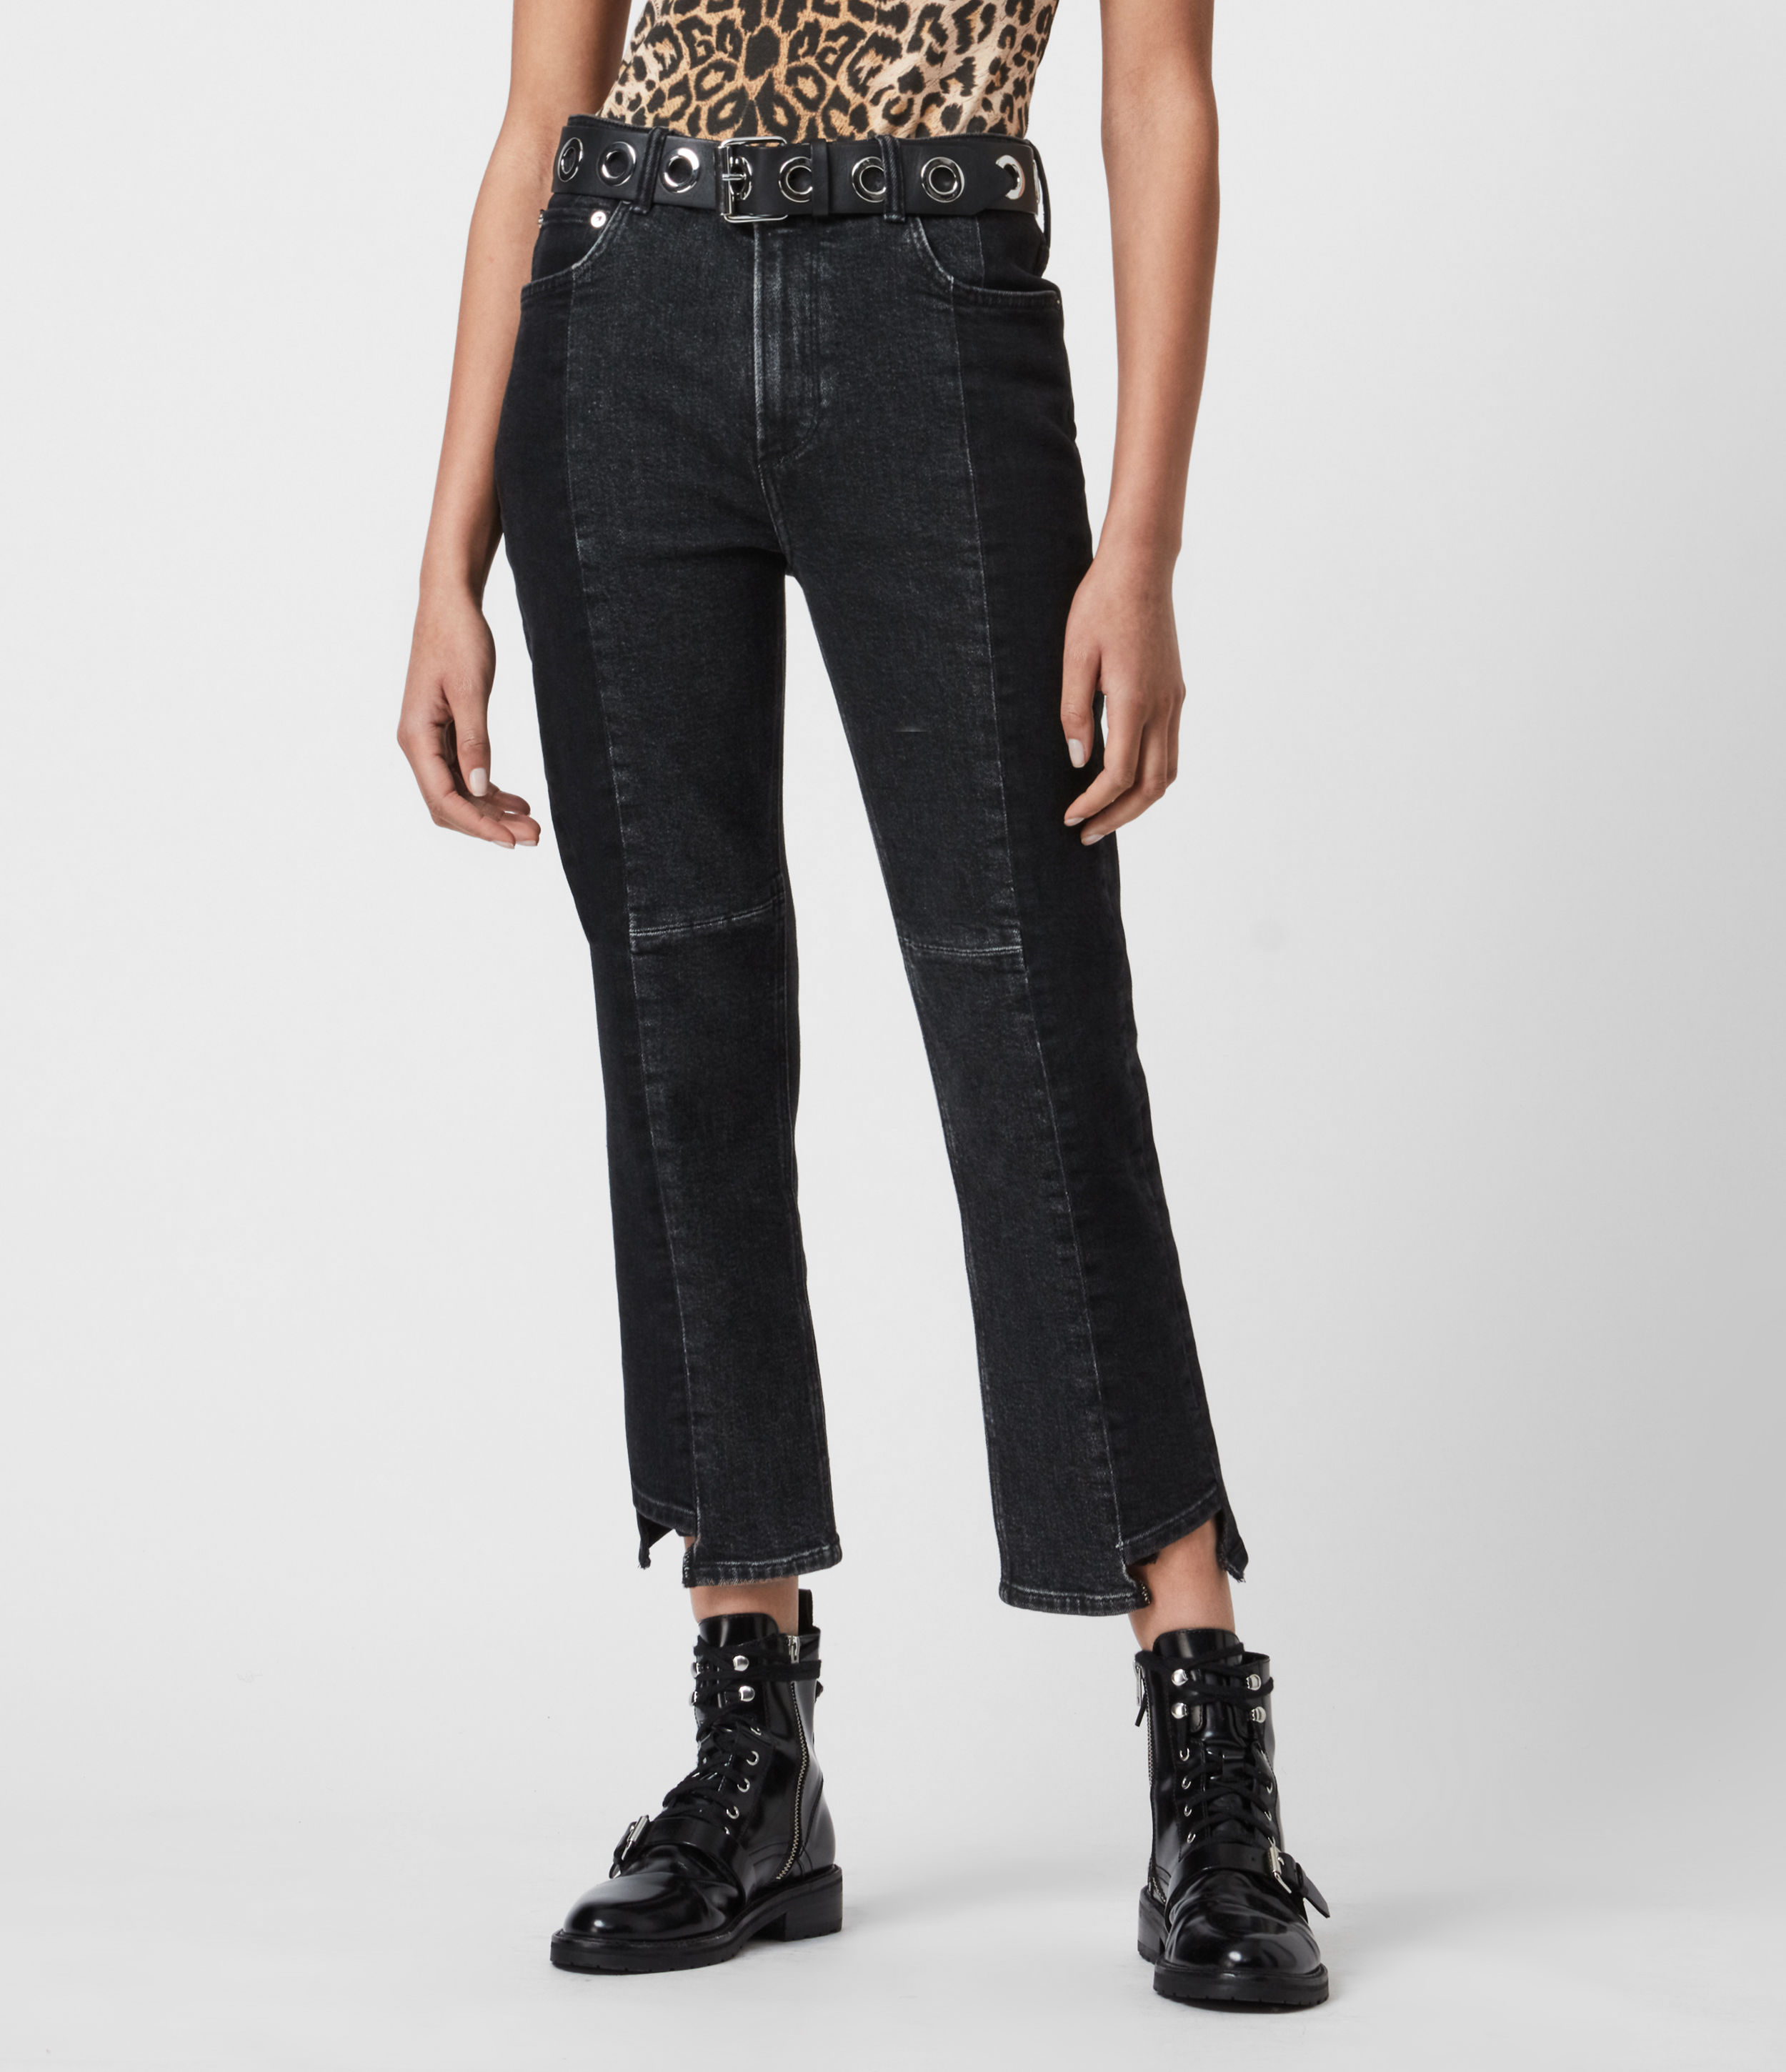 AllSaints Womens Kim Two-Tone High-Rise Slim Jeans, Black, Size: 32